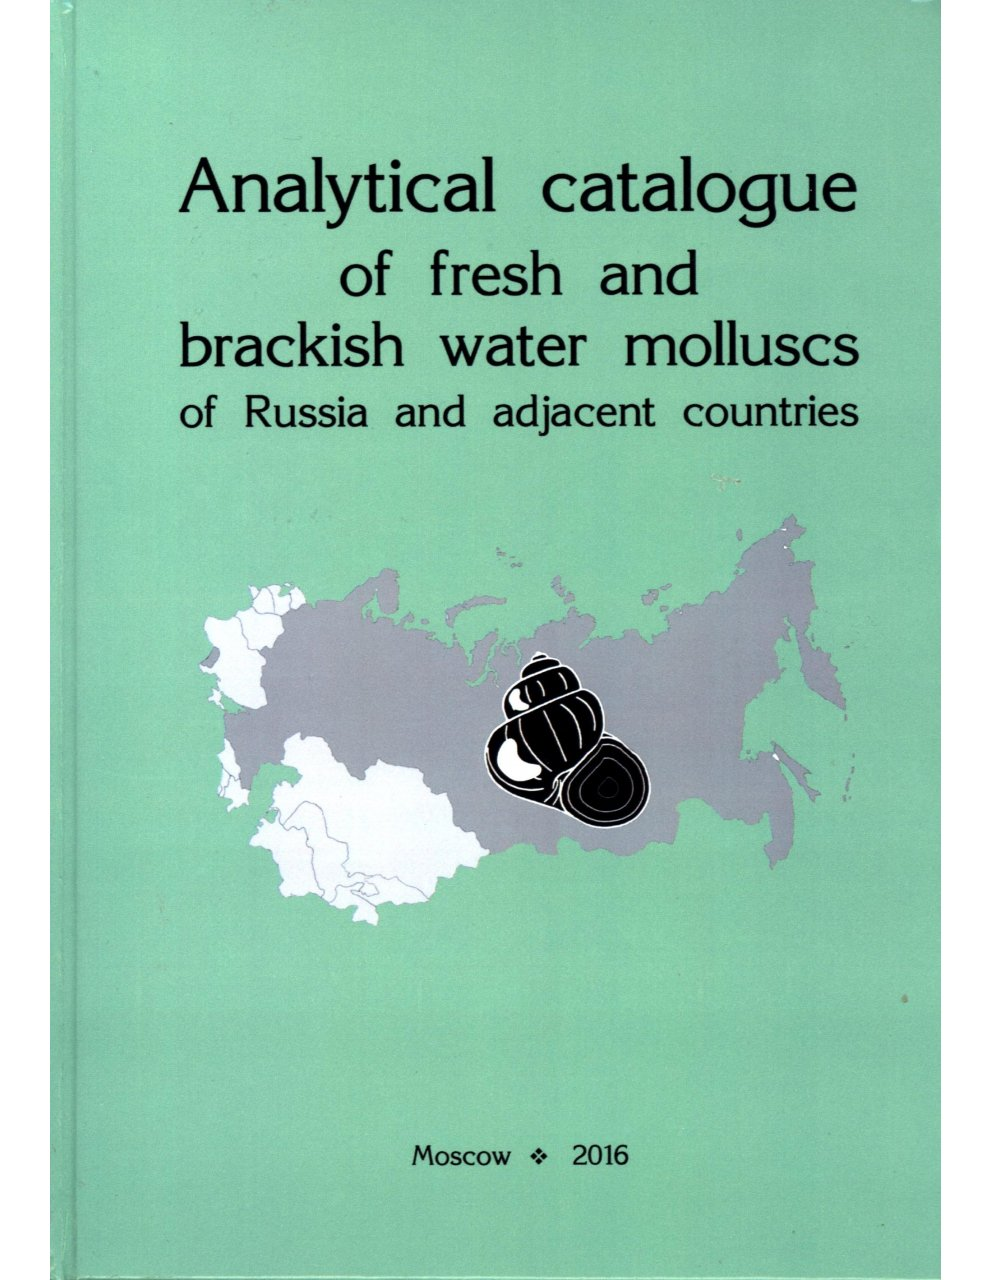 Analytical catalogue of fresh and brackish water molluscs of Russia and adjacent countries